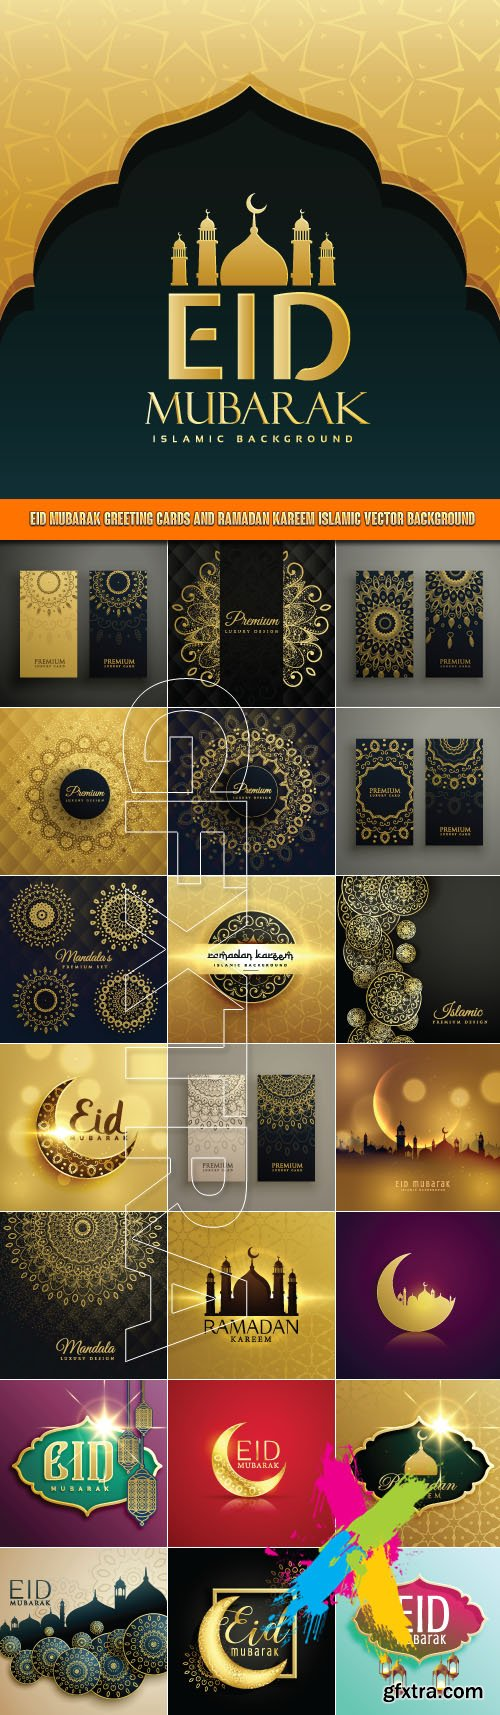 Eid Mubarak Greeting Cards And Ramadan Kareem Islamic Vector